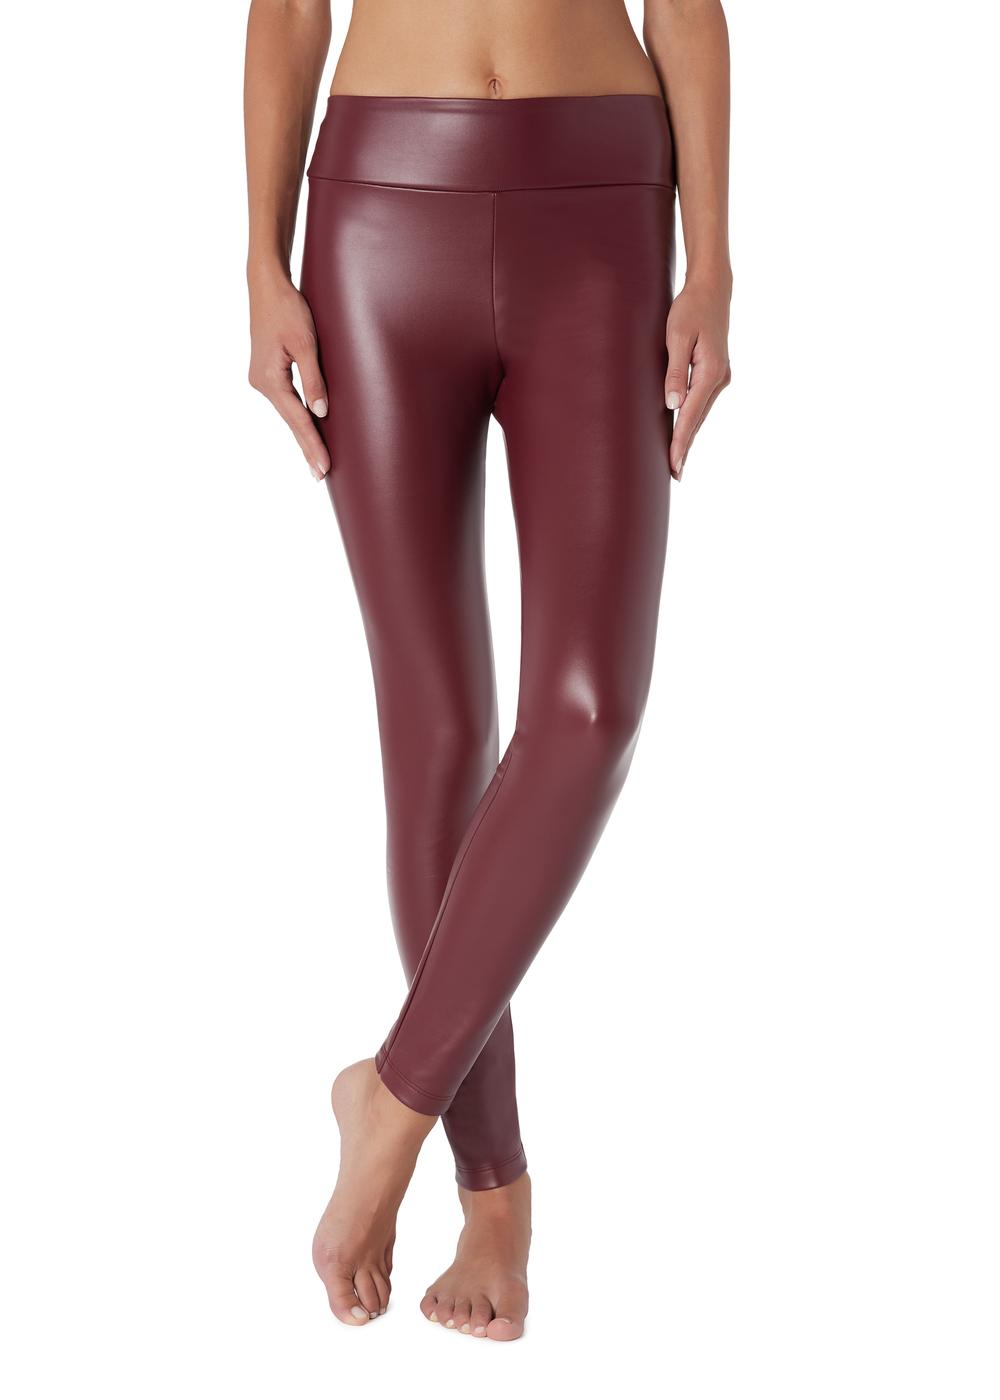 Warme Leder-Effekt-Leggings